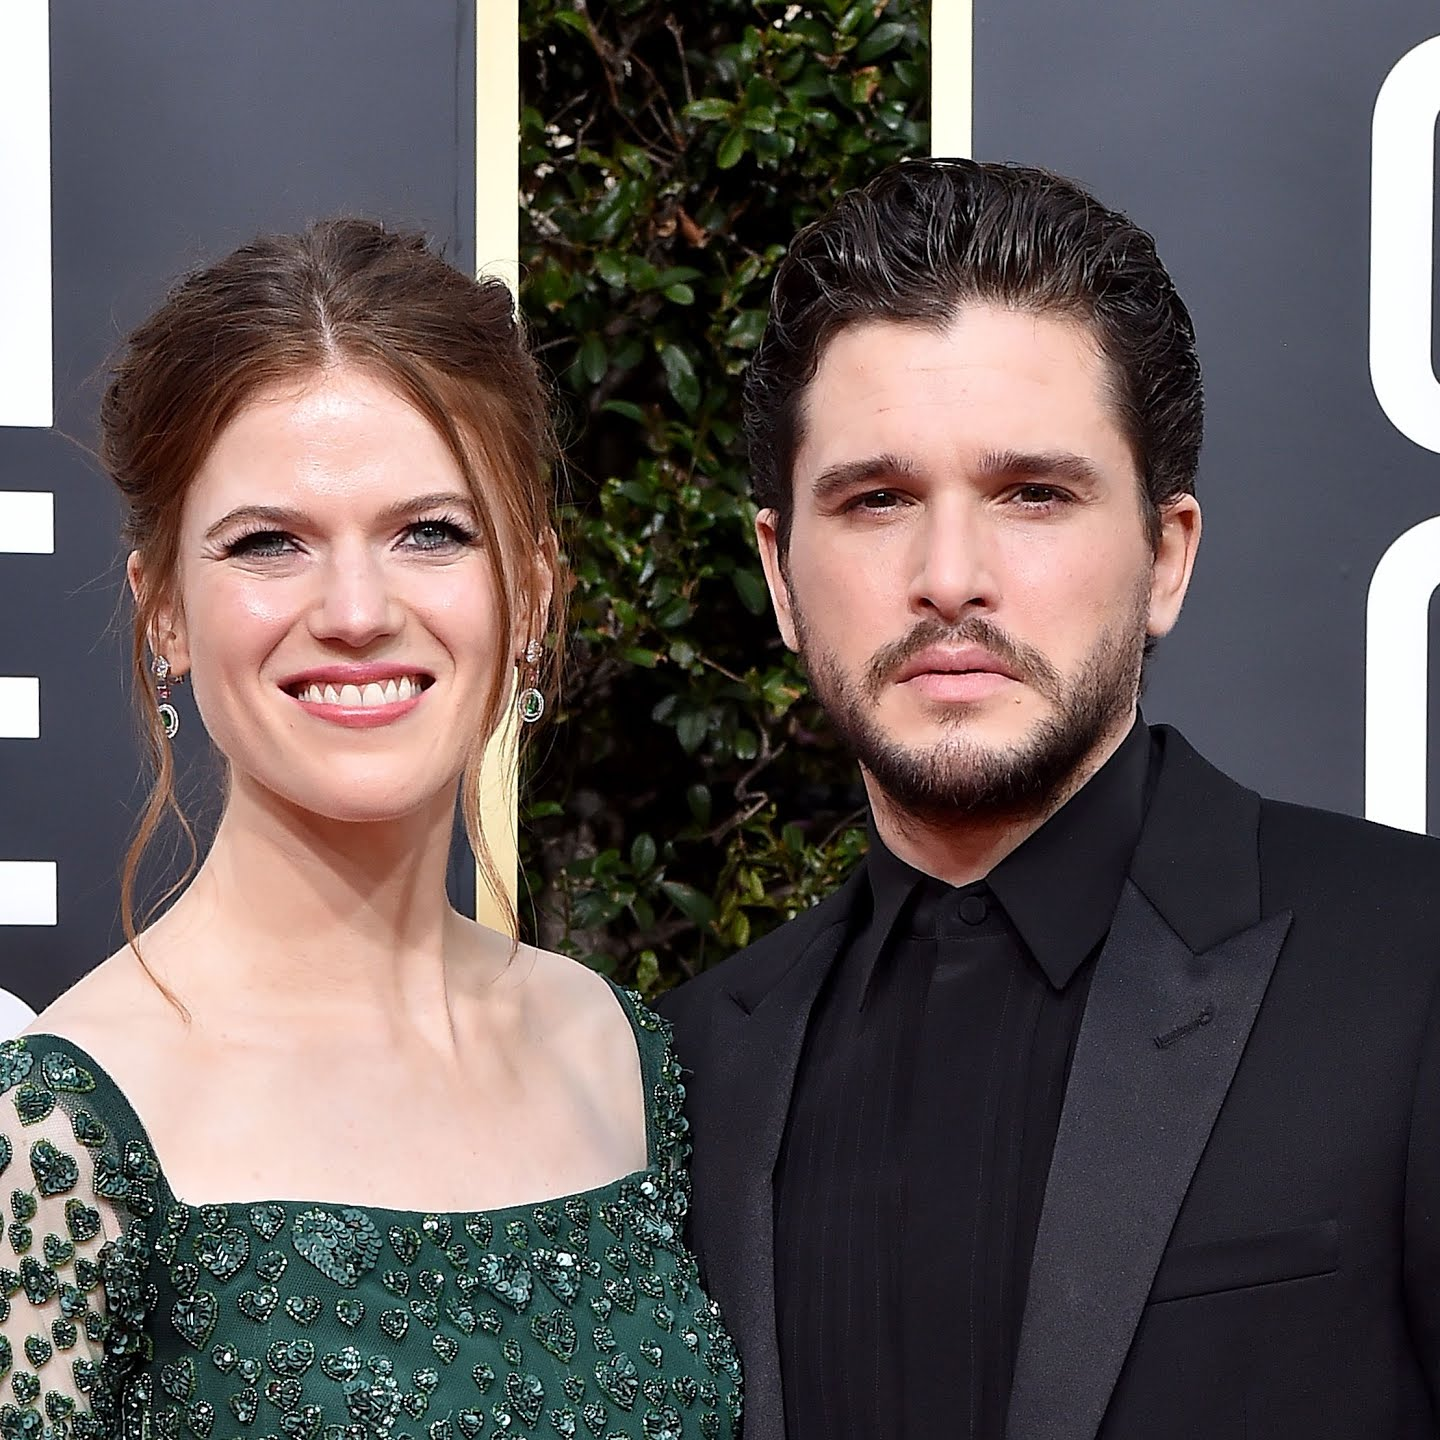 Game Of Throne Stars, Rose Leslie and Kit Harington Are Expecting Their First Child